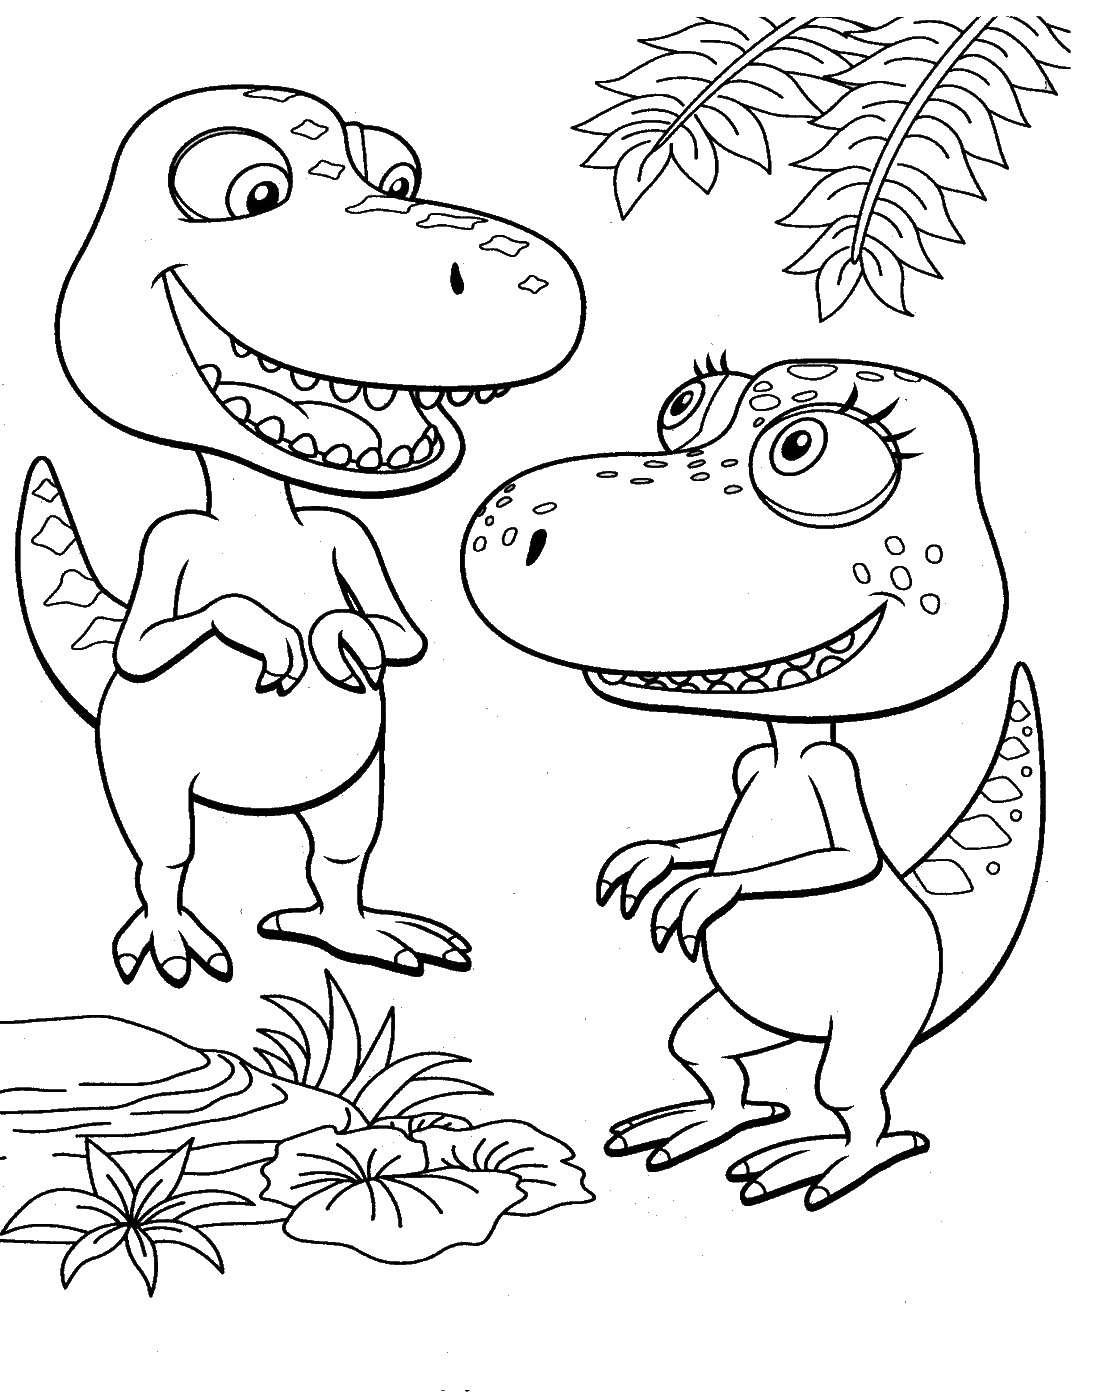 Dinosaur train coloring pages dinosaurs pictures and facts for Printable coloring pages dinosaurs